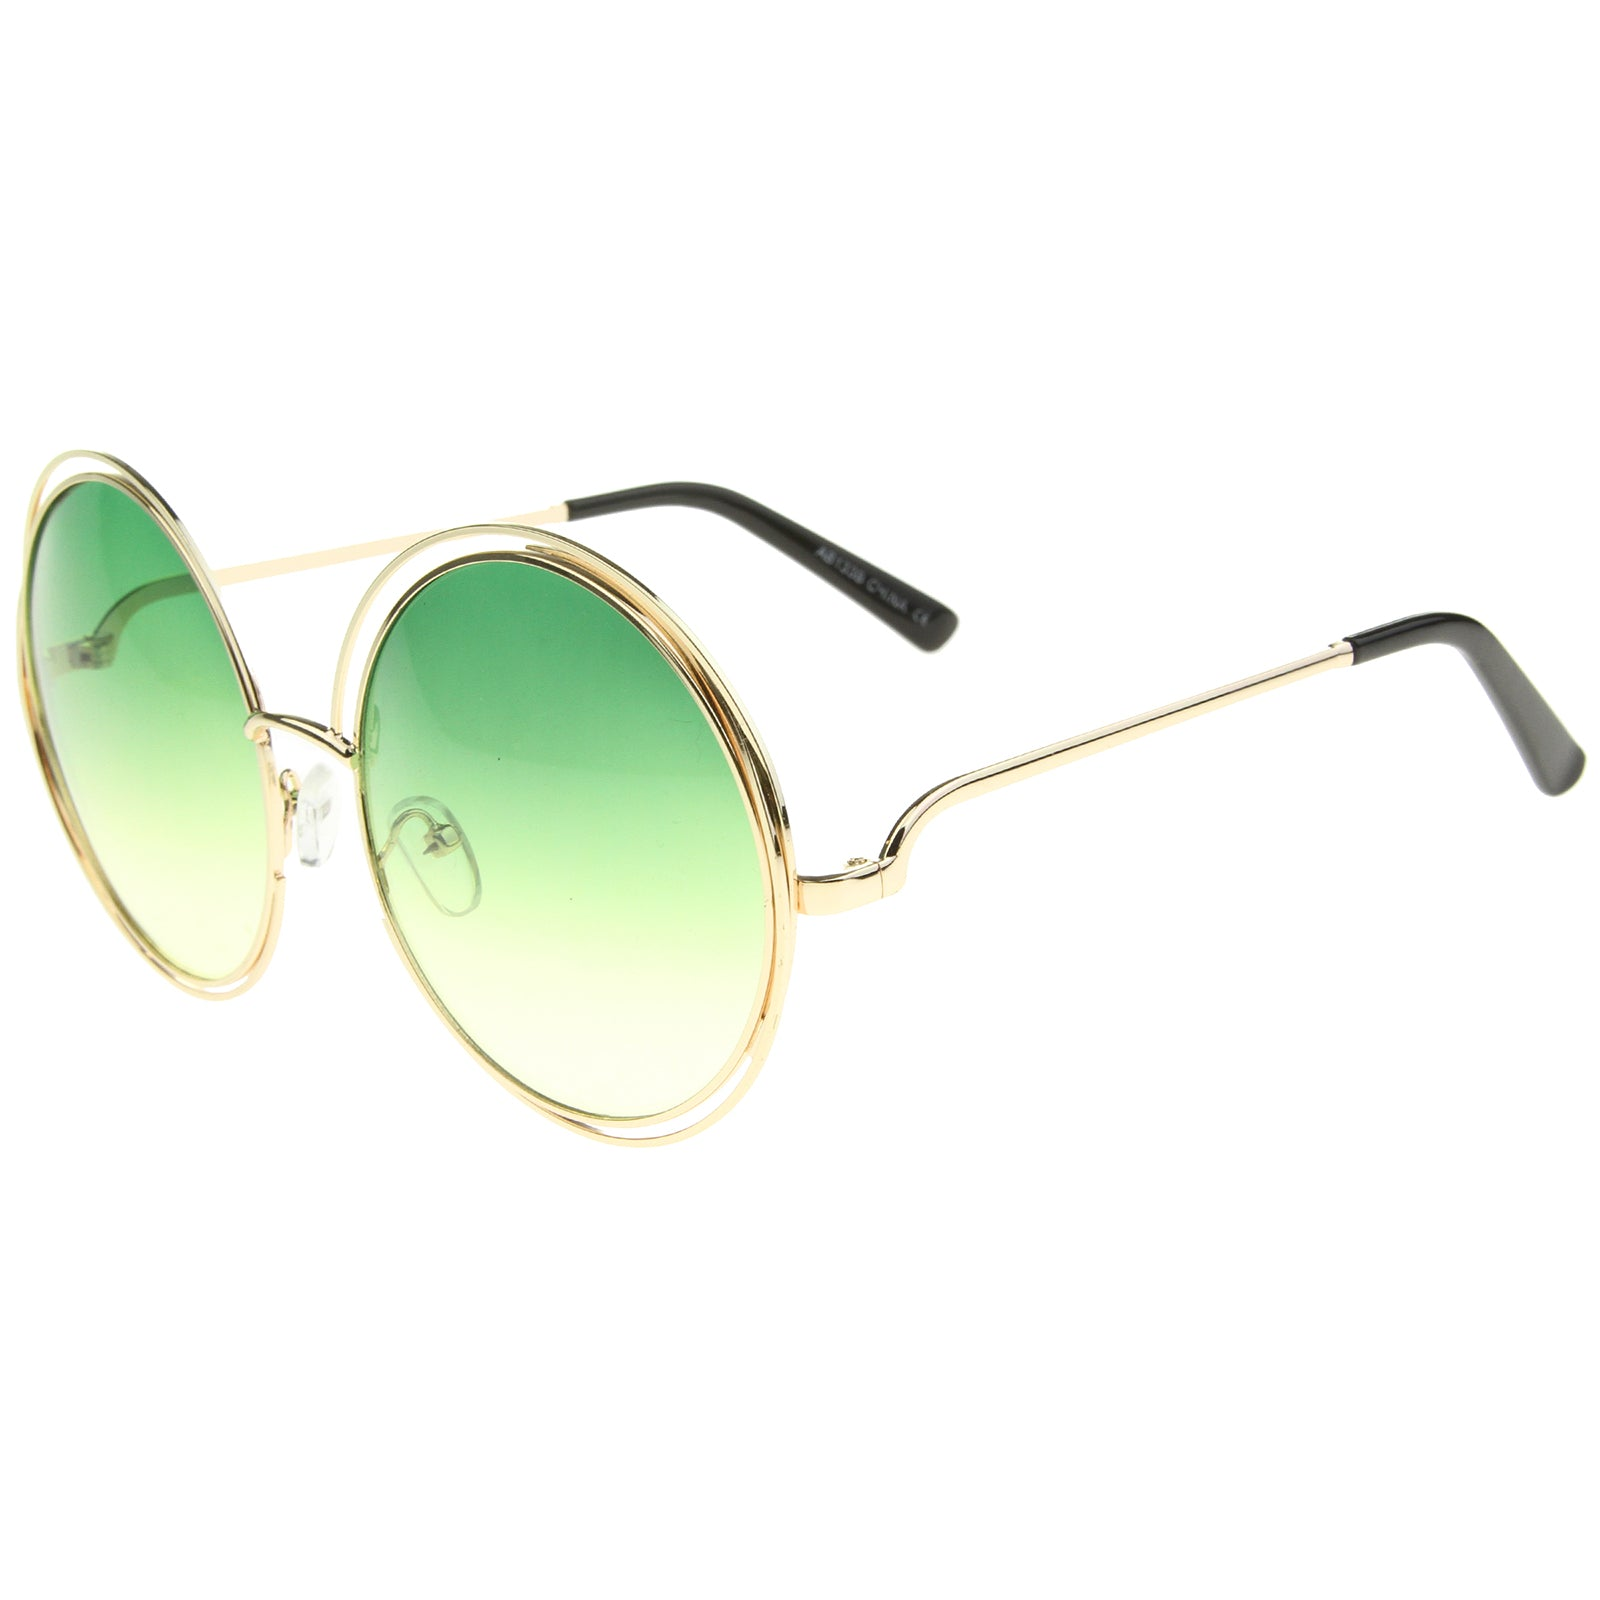 Oversize Wire Frame Gradient Two-Tone Color Lens Round Sunglasses 61mm - sunglass.la - 7